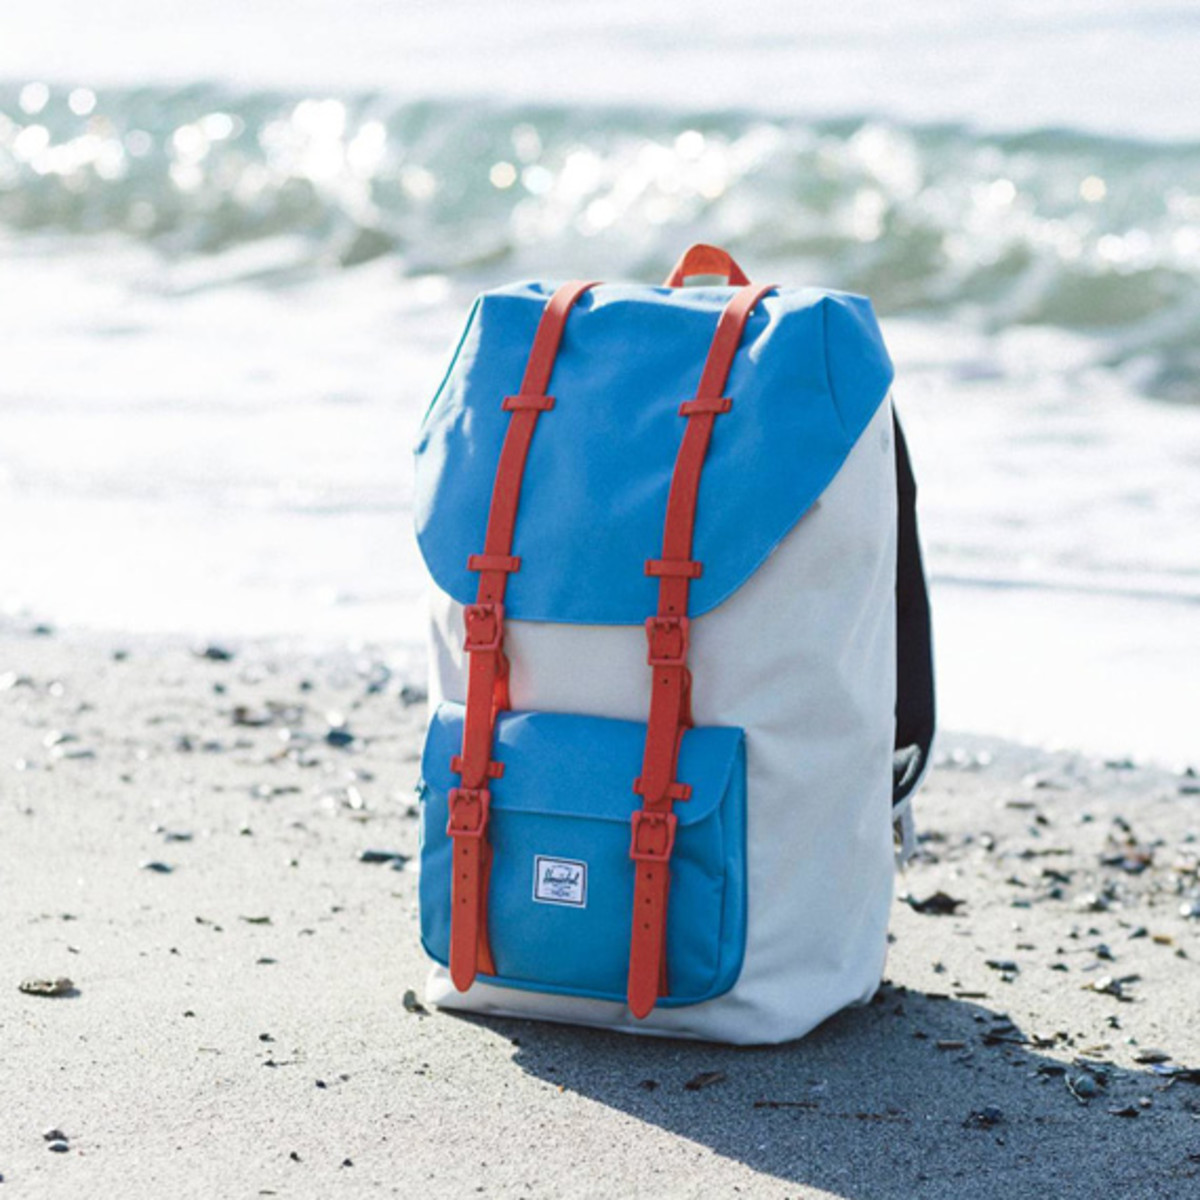 herschel-supply-co-x-kevin-butler-rad-cars-with-rad-surfboards-collection-01